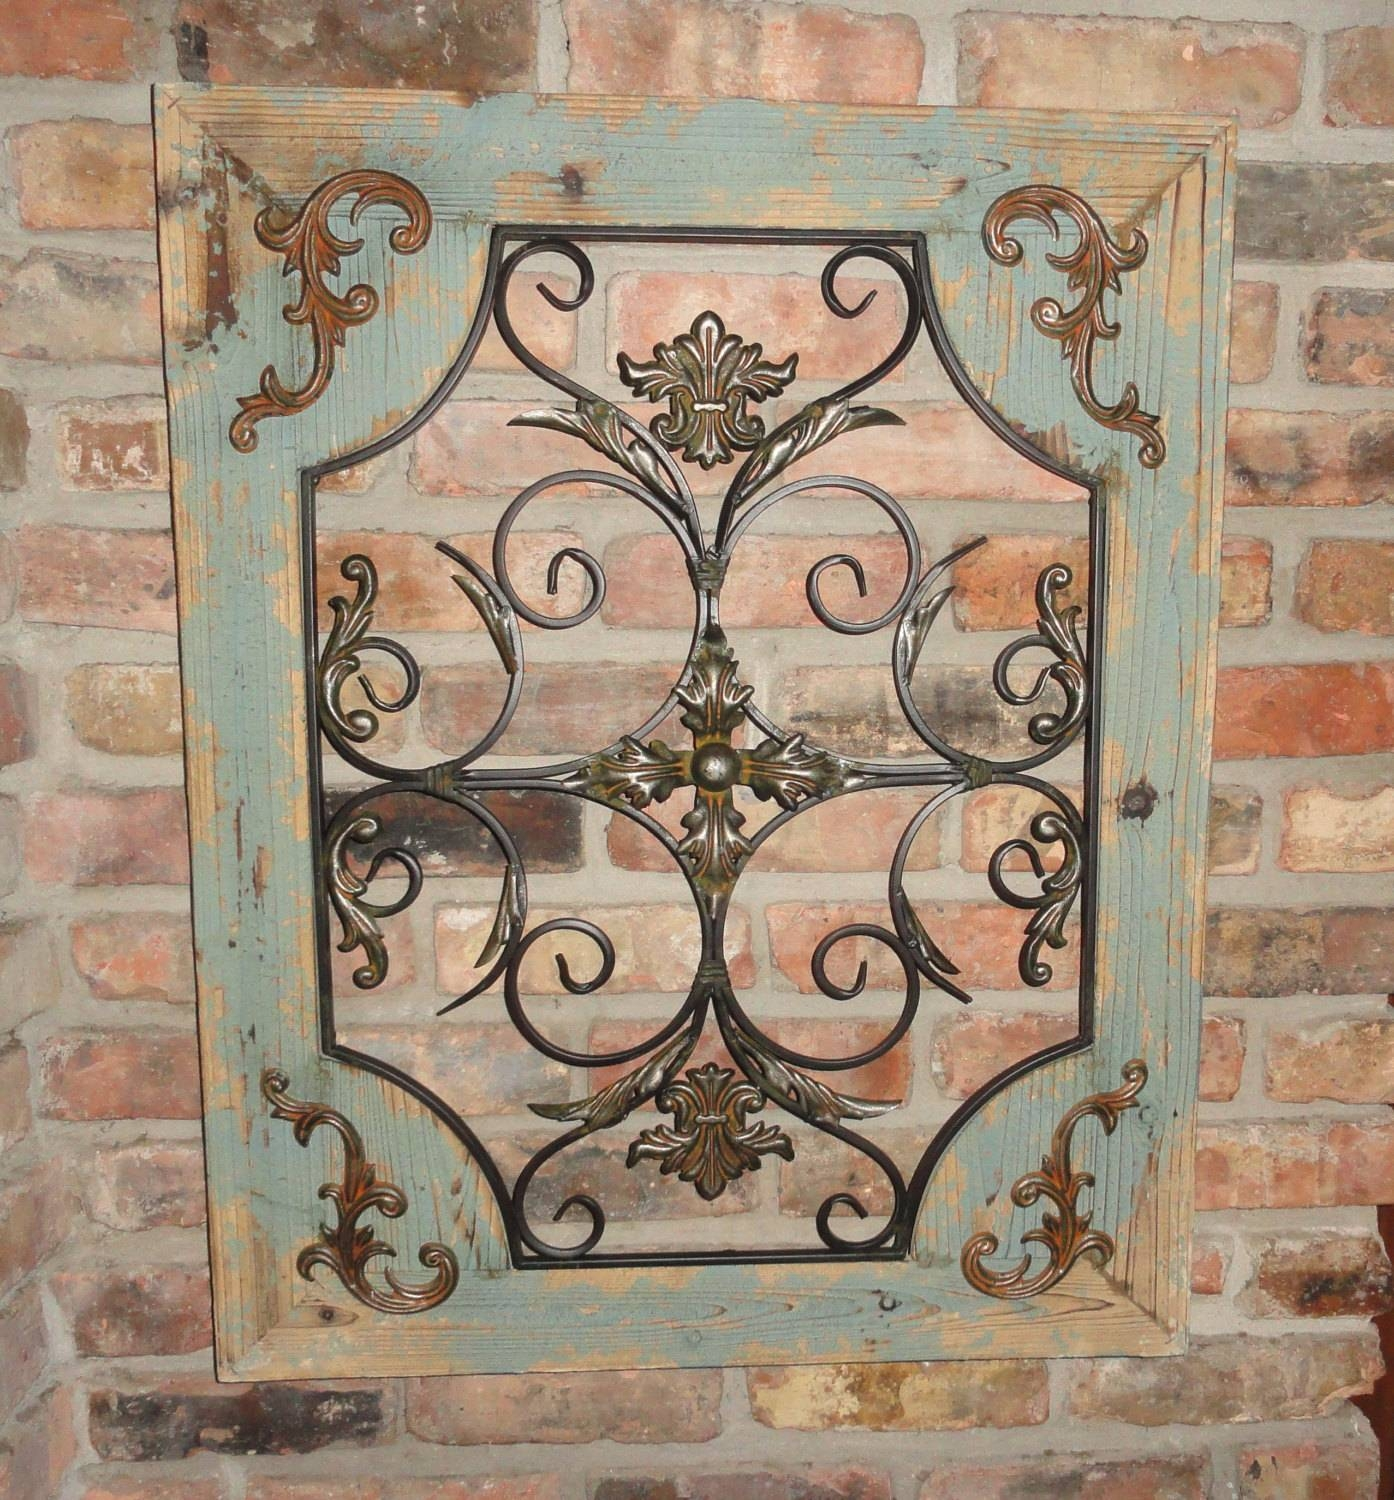 Rustic Turquoise Wood & Metal Wall Decor Cottage Chic Shabby Intended For 2018 Country Metal Wall Art (Gallery 28 of 30)